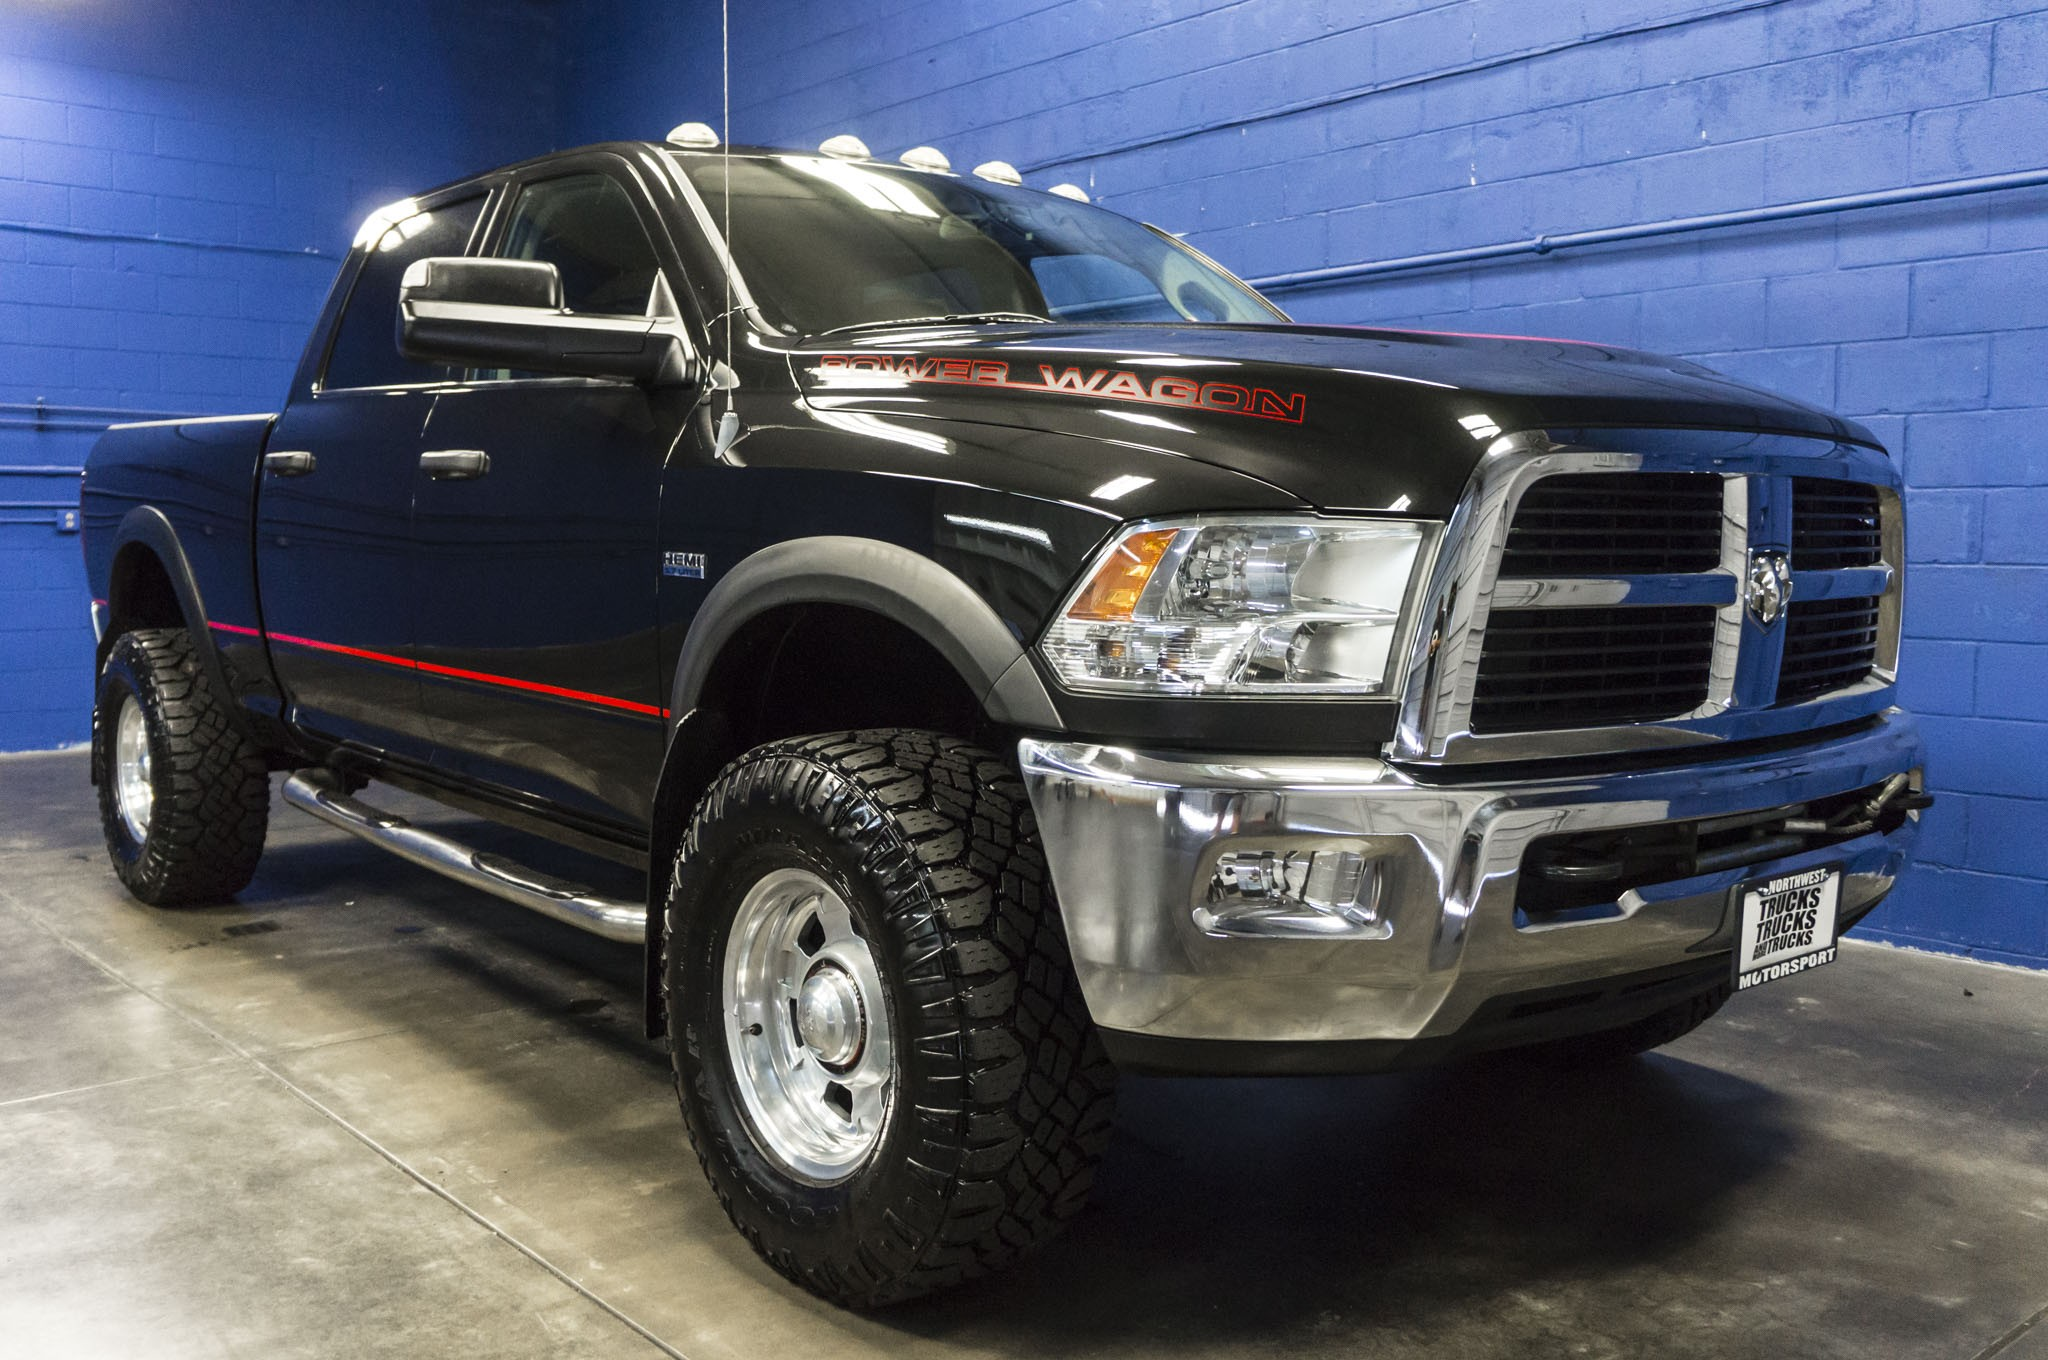 Used 2010 Dodge Ram 2500 Power Wagon 4x4 Truck For Sale A